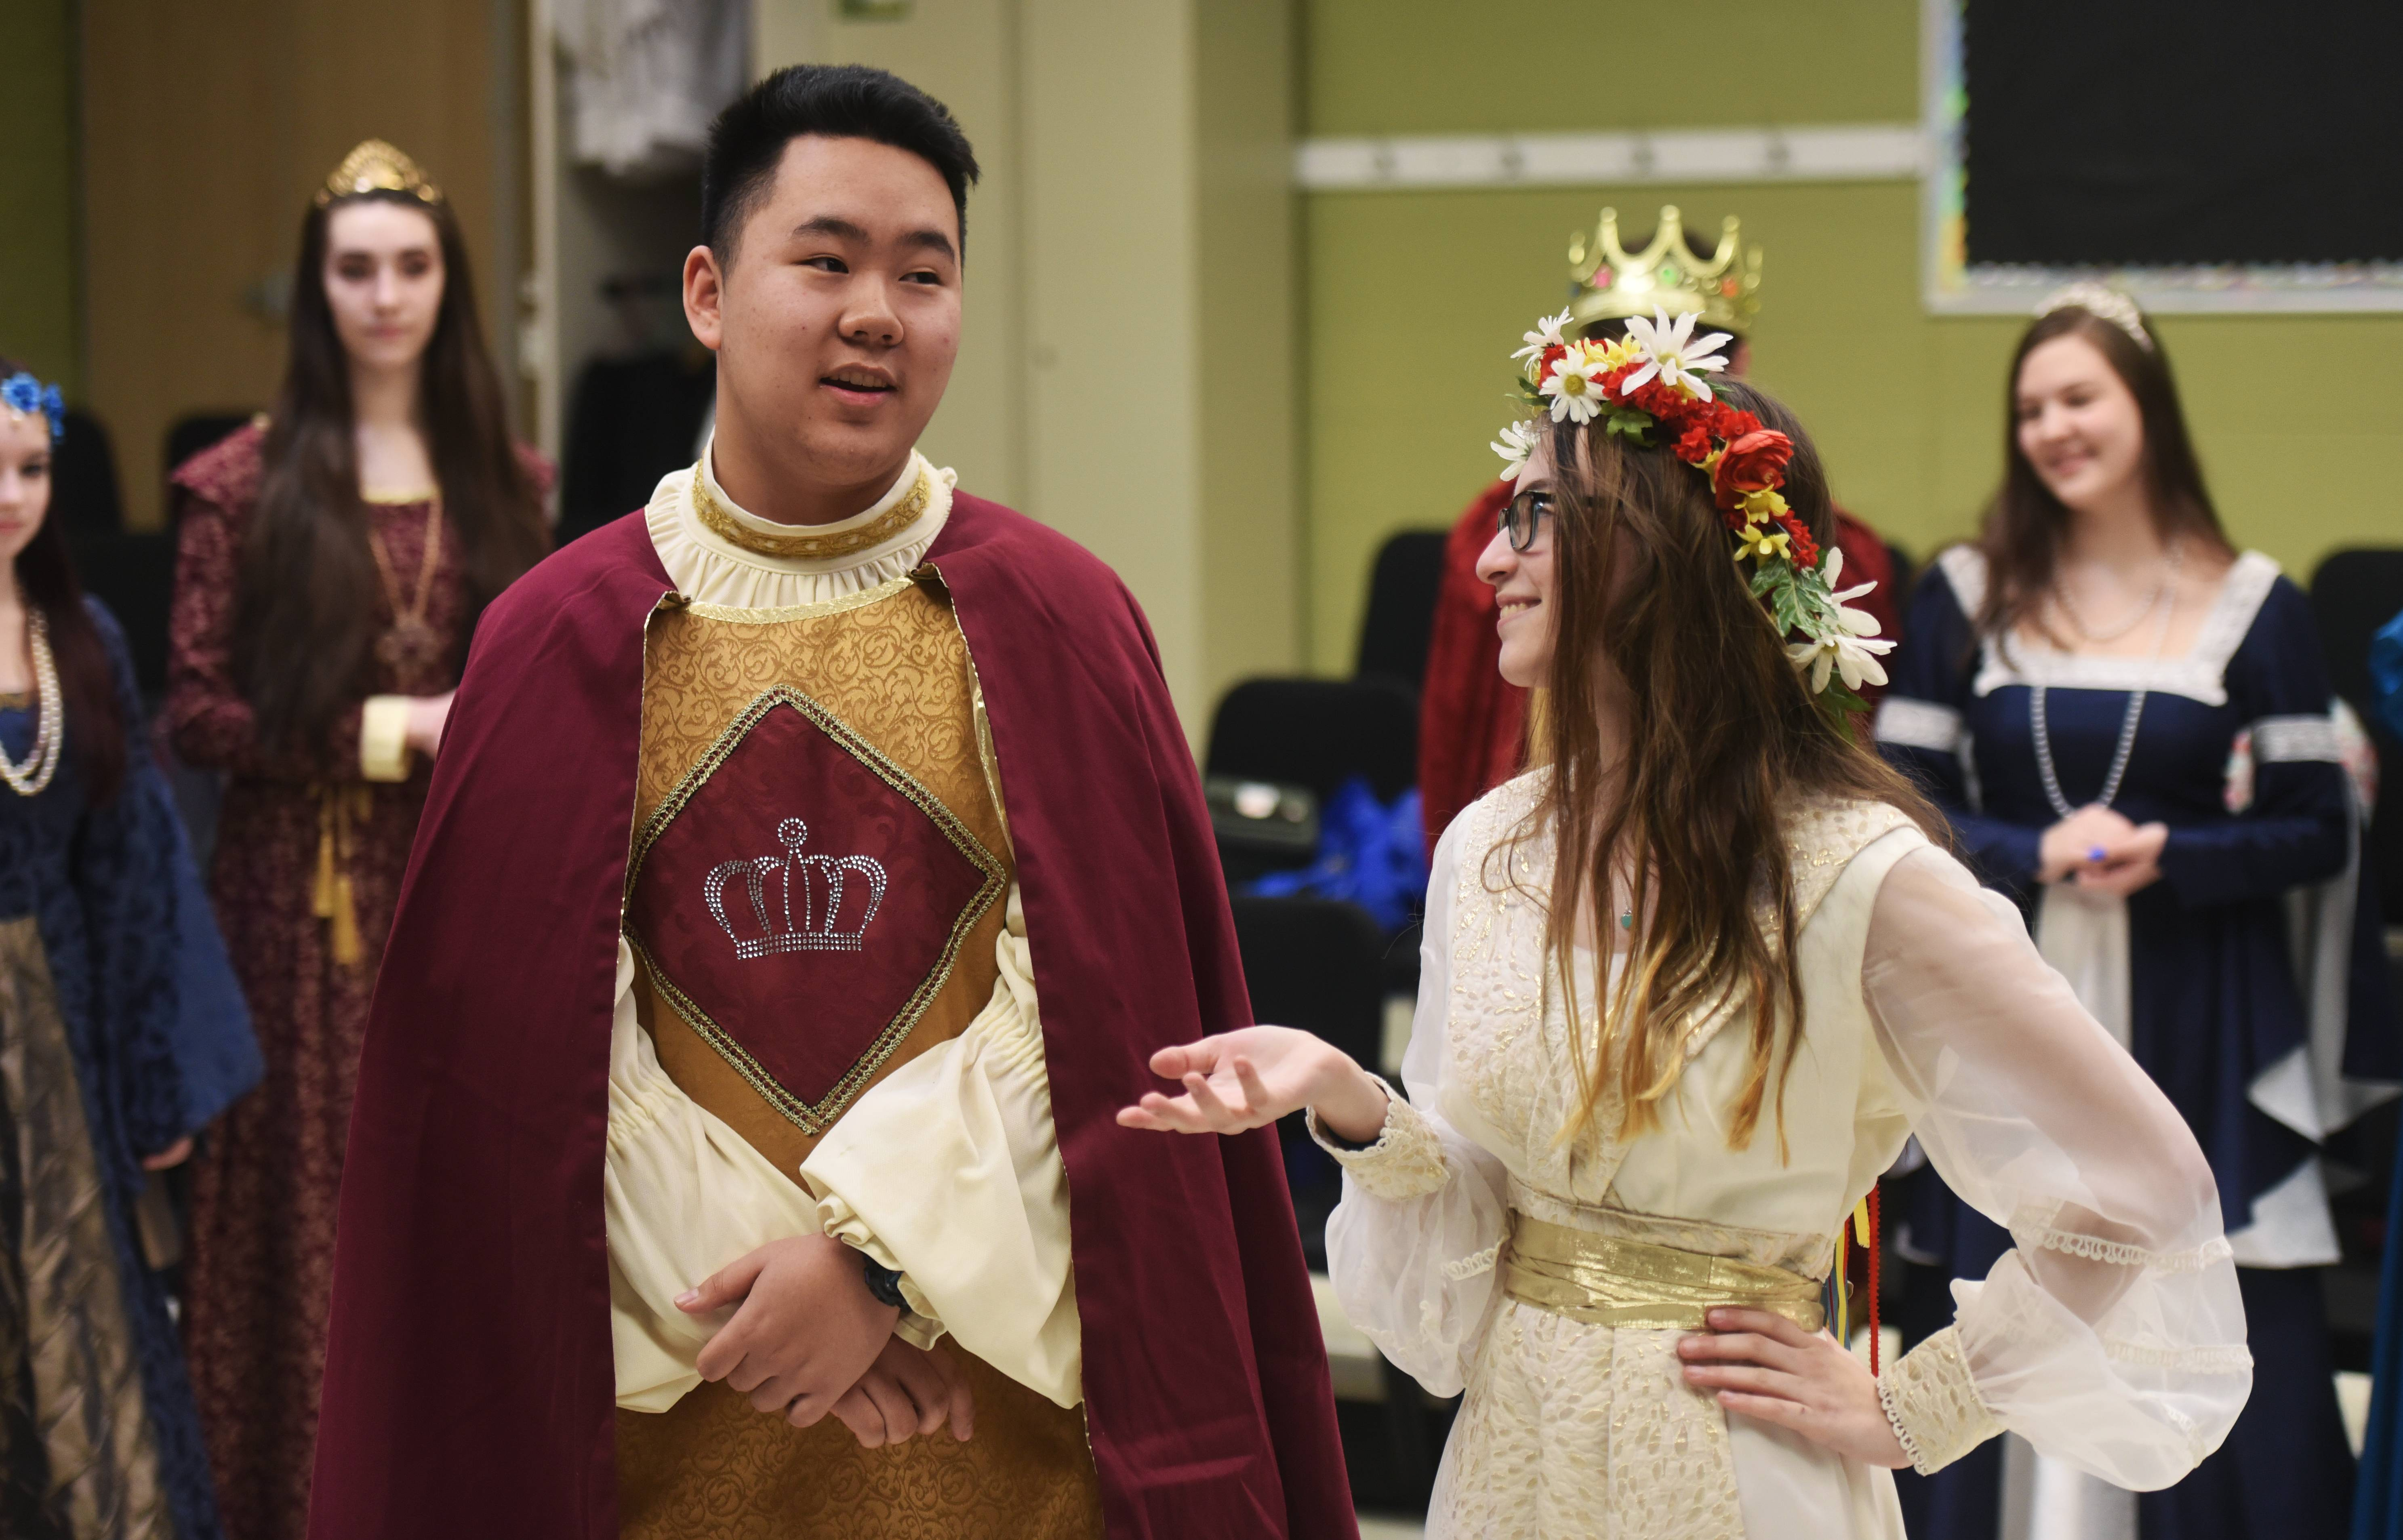 Shawn Zhu, who plays Prince Rowan, and Mary Baldino, who plays Adelaide, perform lines of dialogue Tuesday during a dress rehearsal for the Stevenson High School Madrigal dinner.